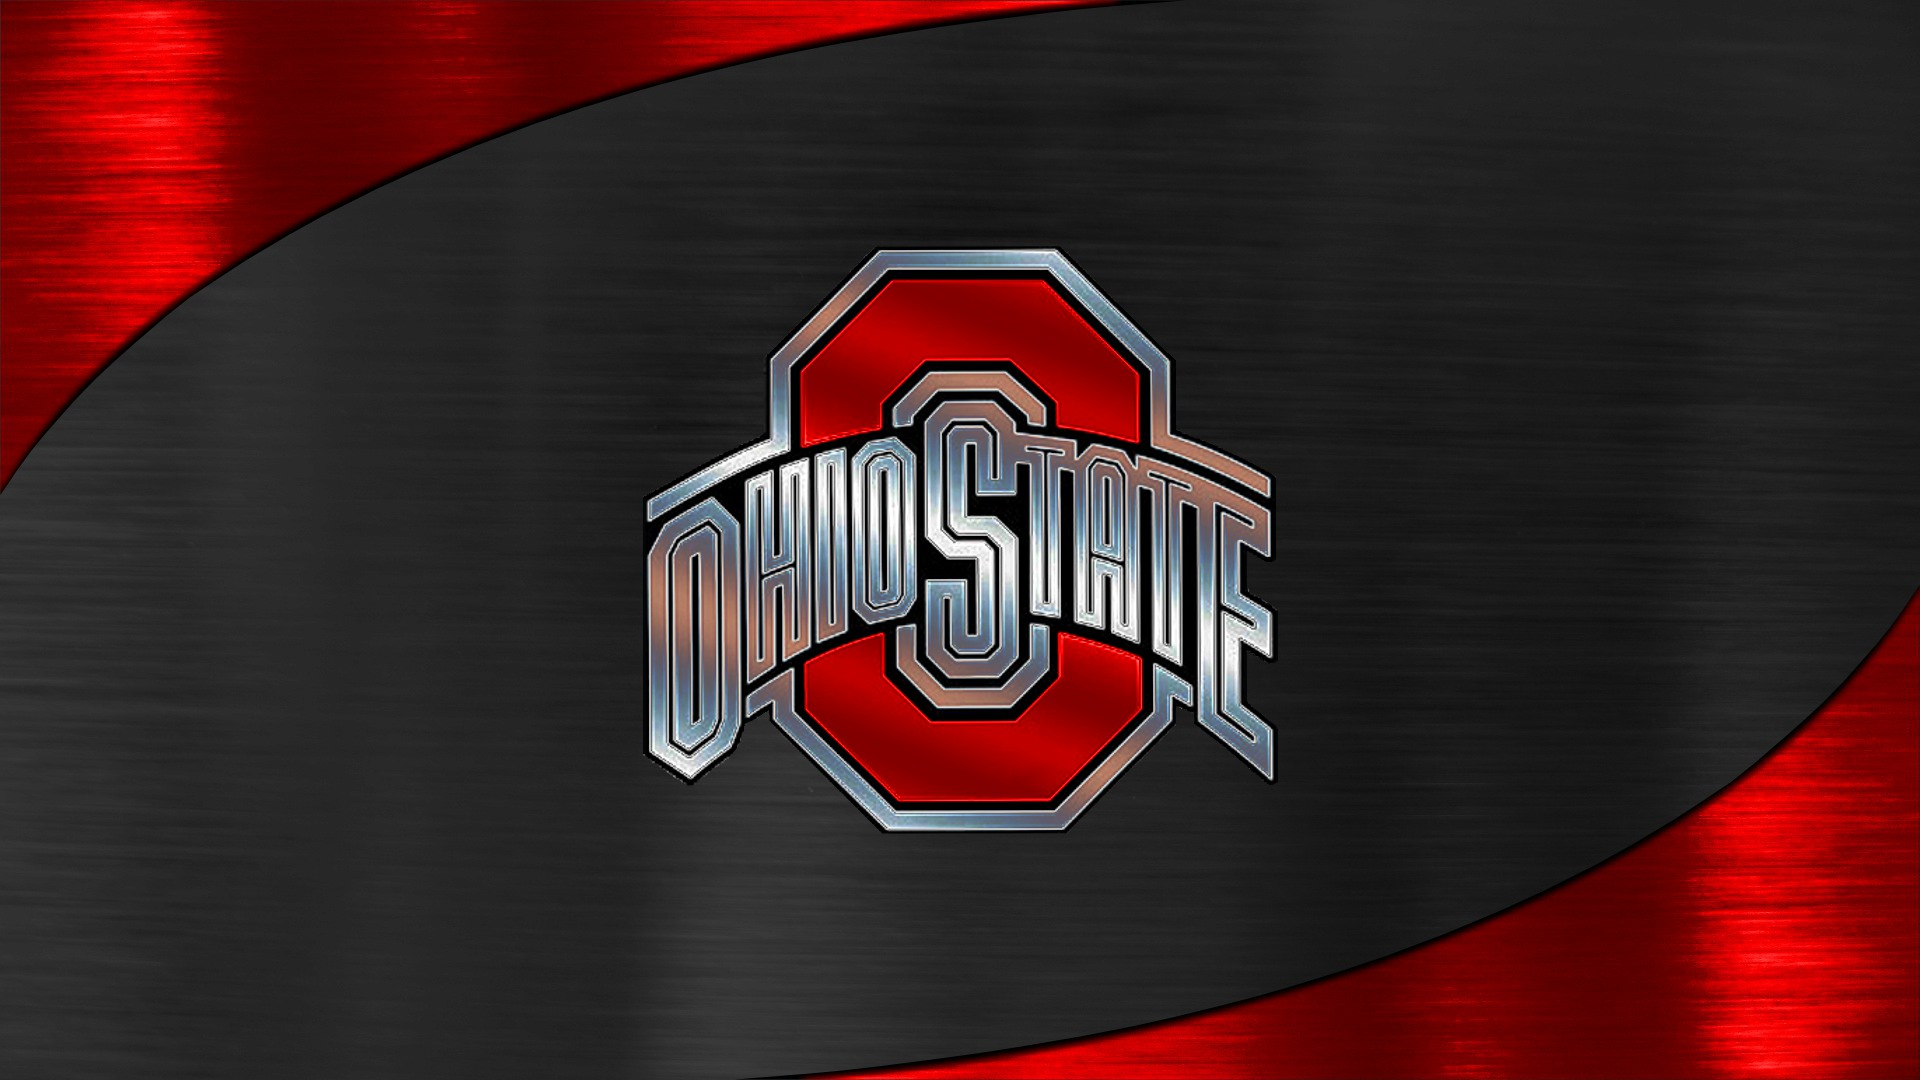 OSU Wallpaper 445   Ohio State Football Wallpaper 33526935 1920x1080